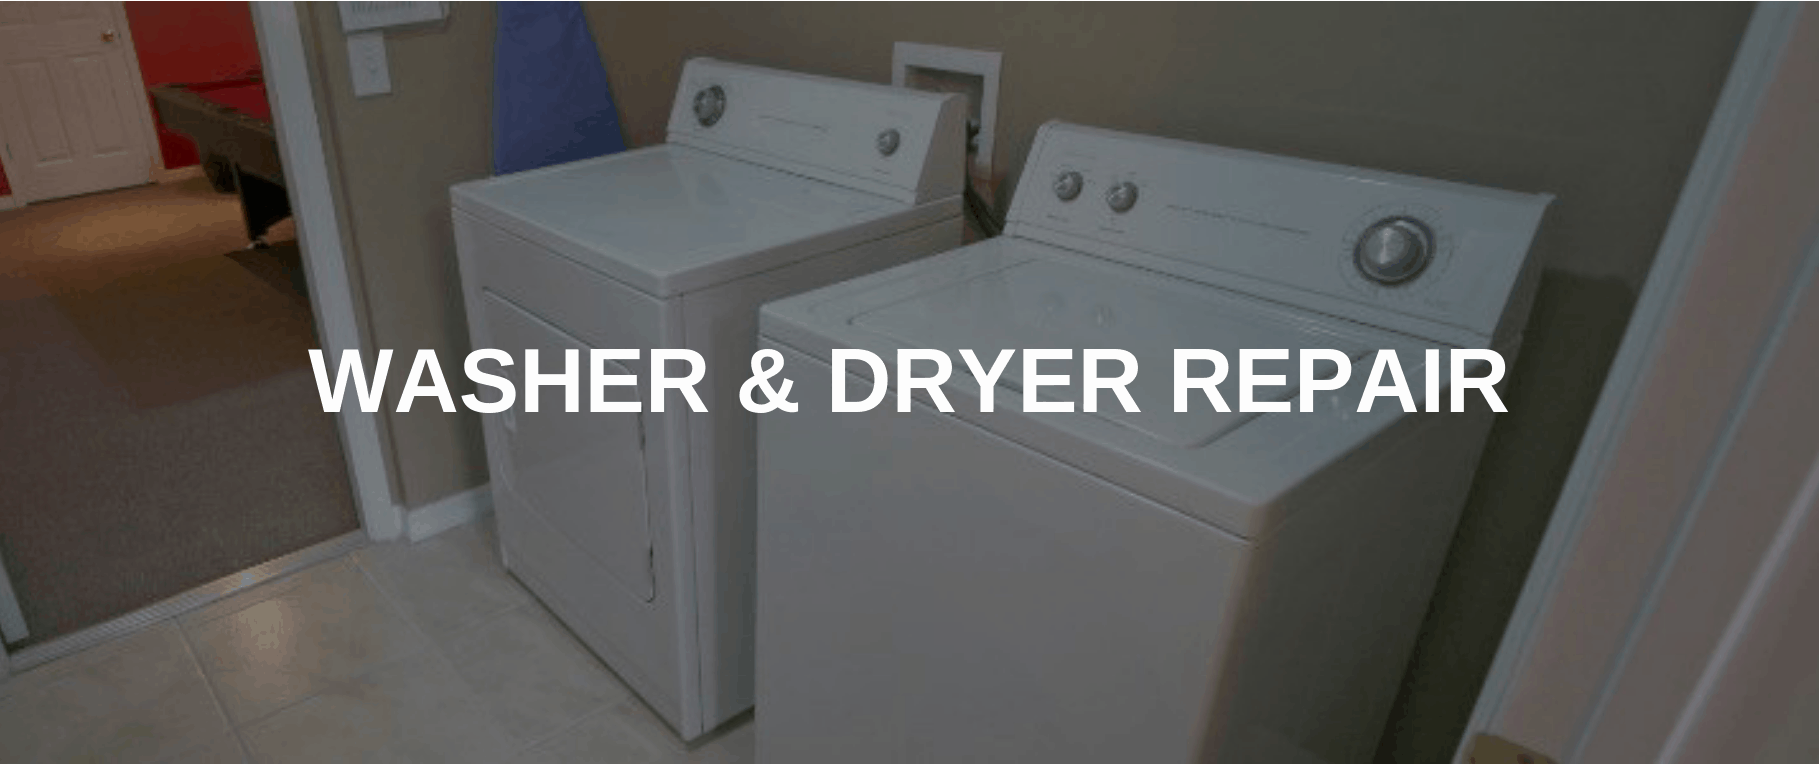 washing machine repair atlanta ga